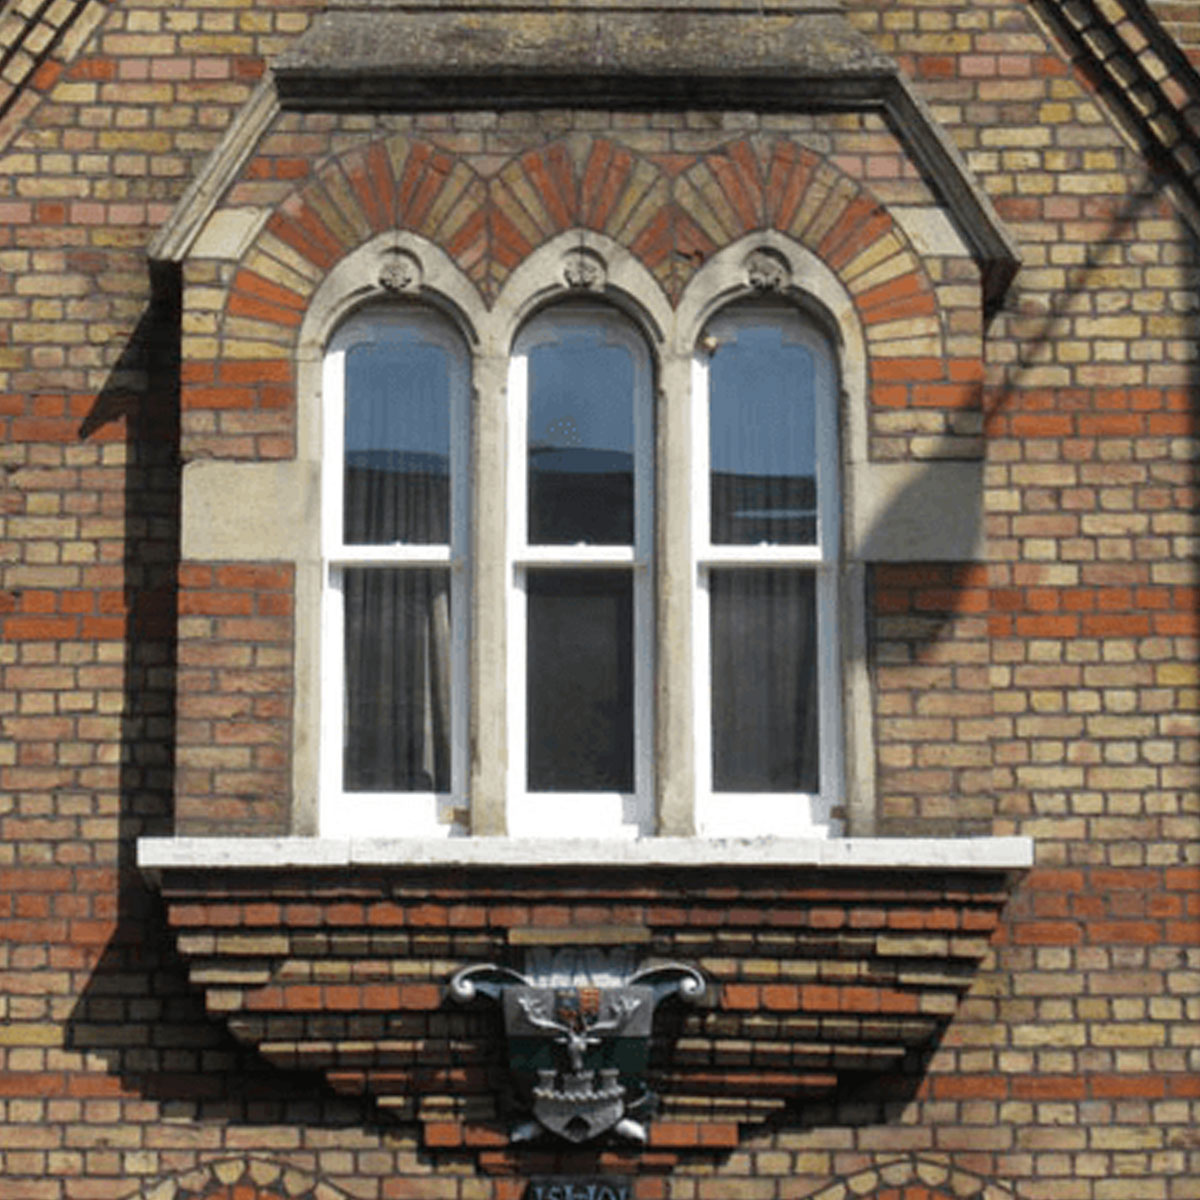 Box sash windows upgrades